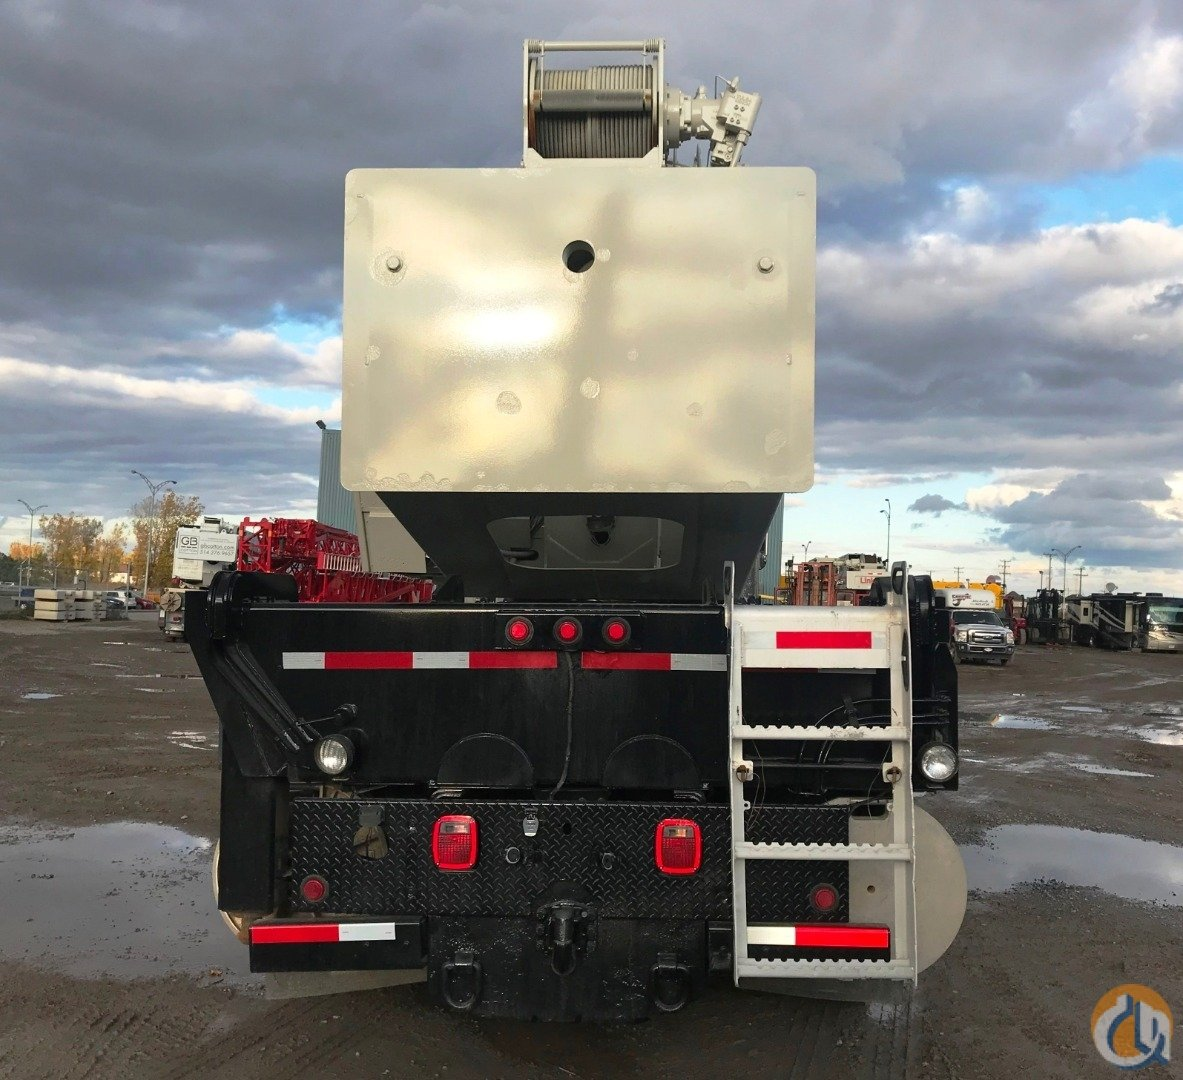 2012 NATIONAL NBT40 Crane for Sale or Rent in Laval Quebec on CraneNetwork.com